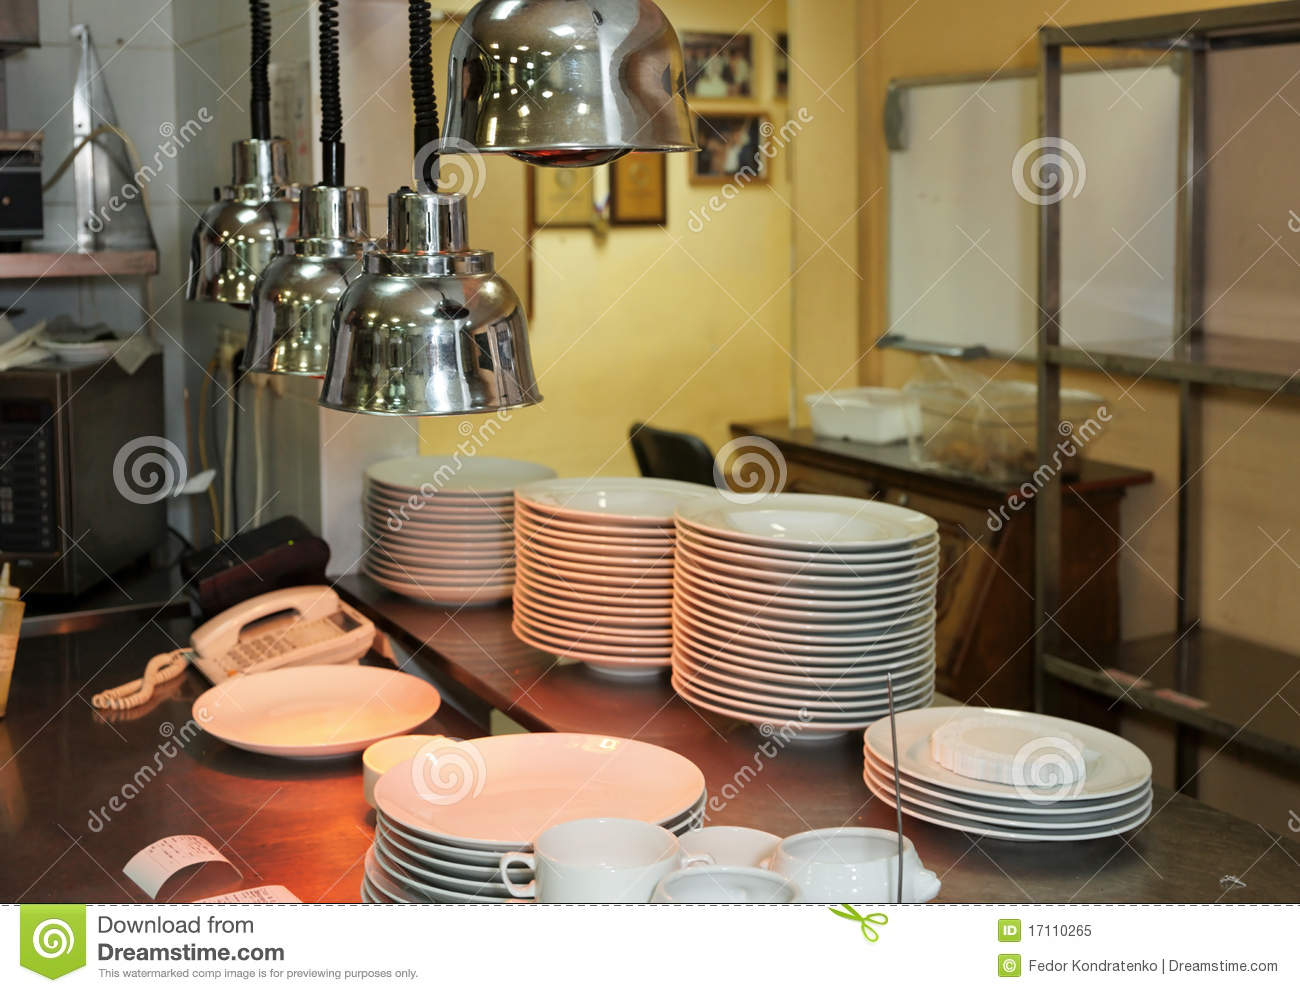 How To Keep Plates Warm In Commercial Kitchen